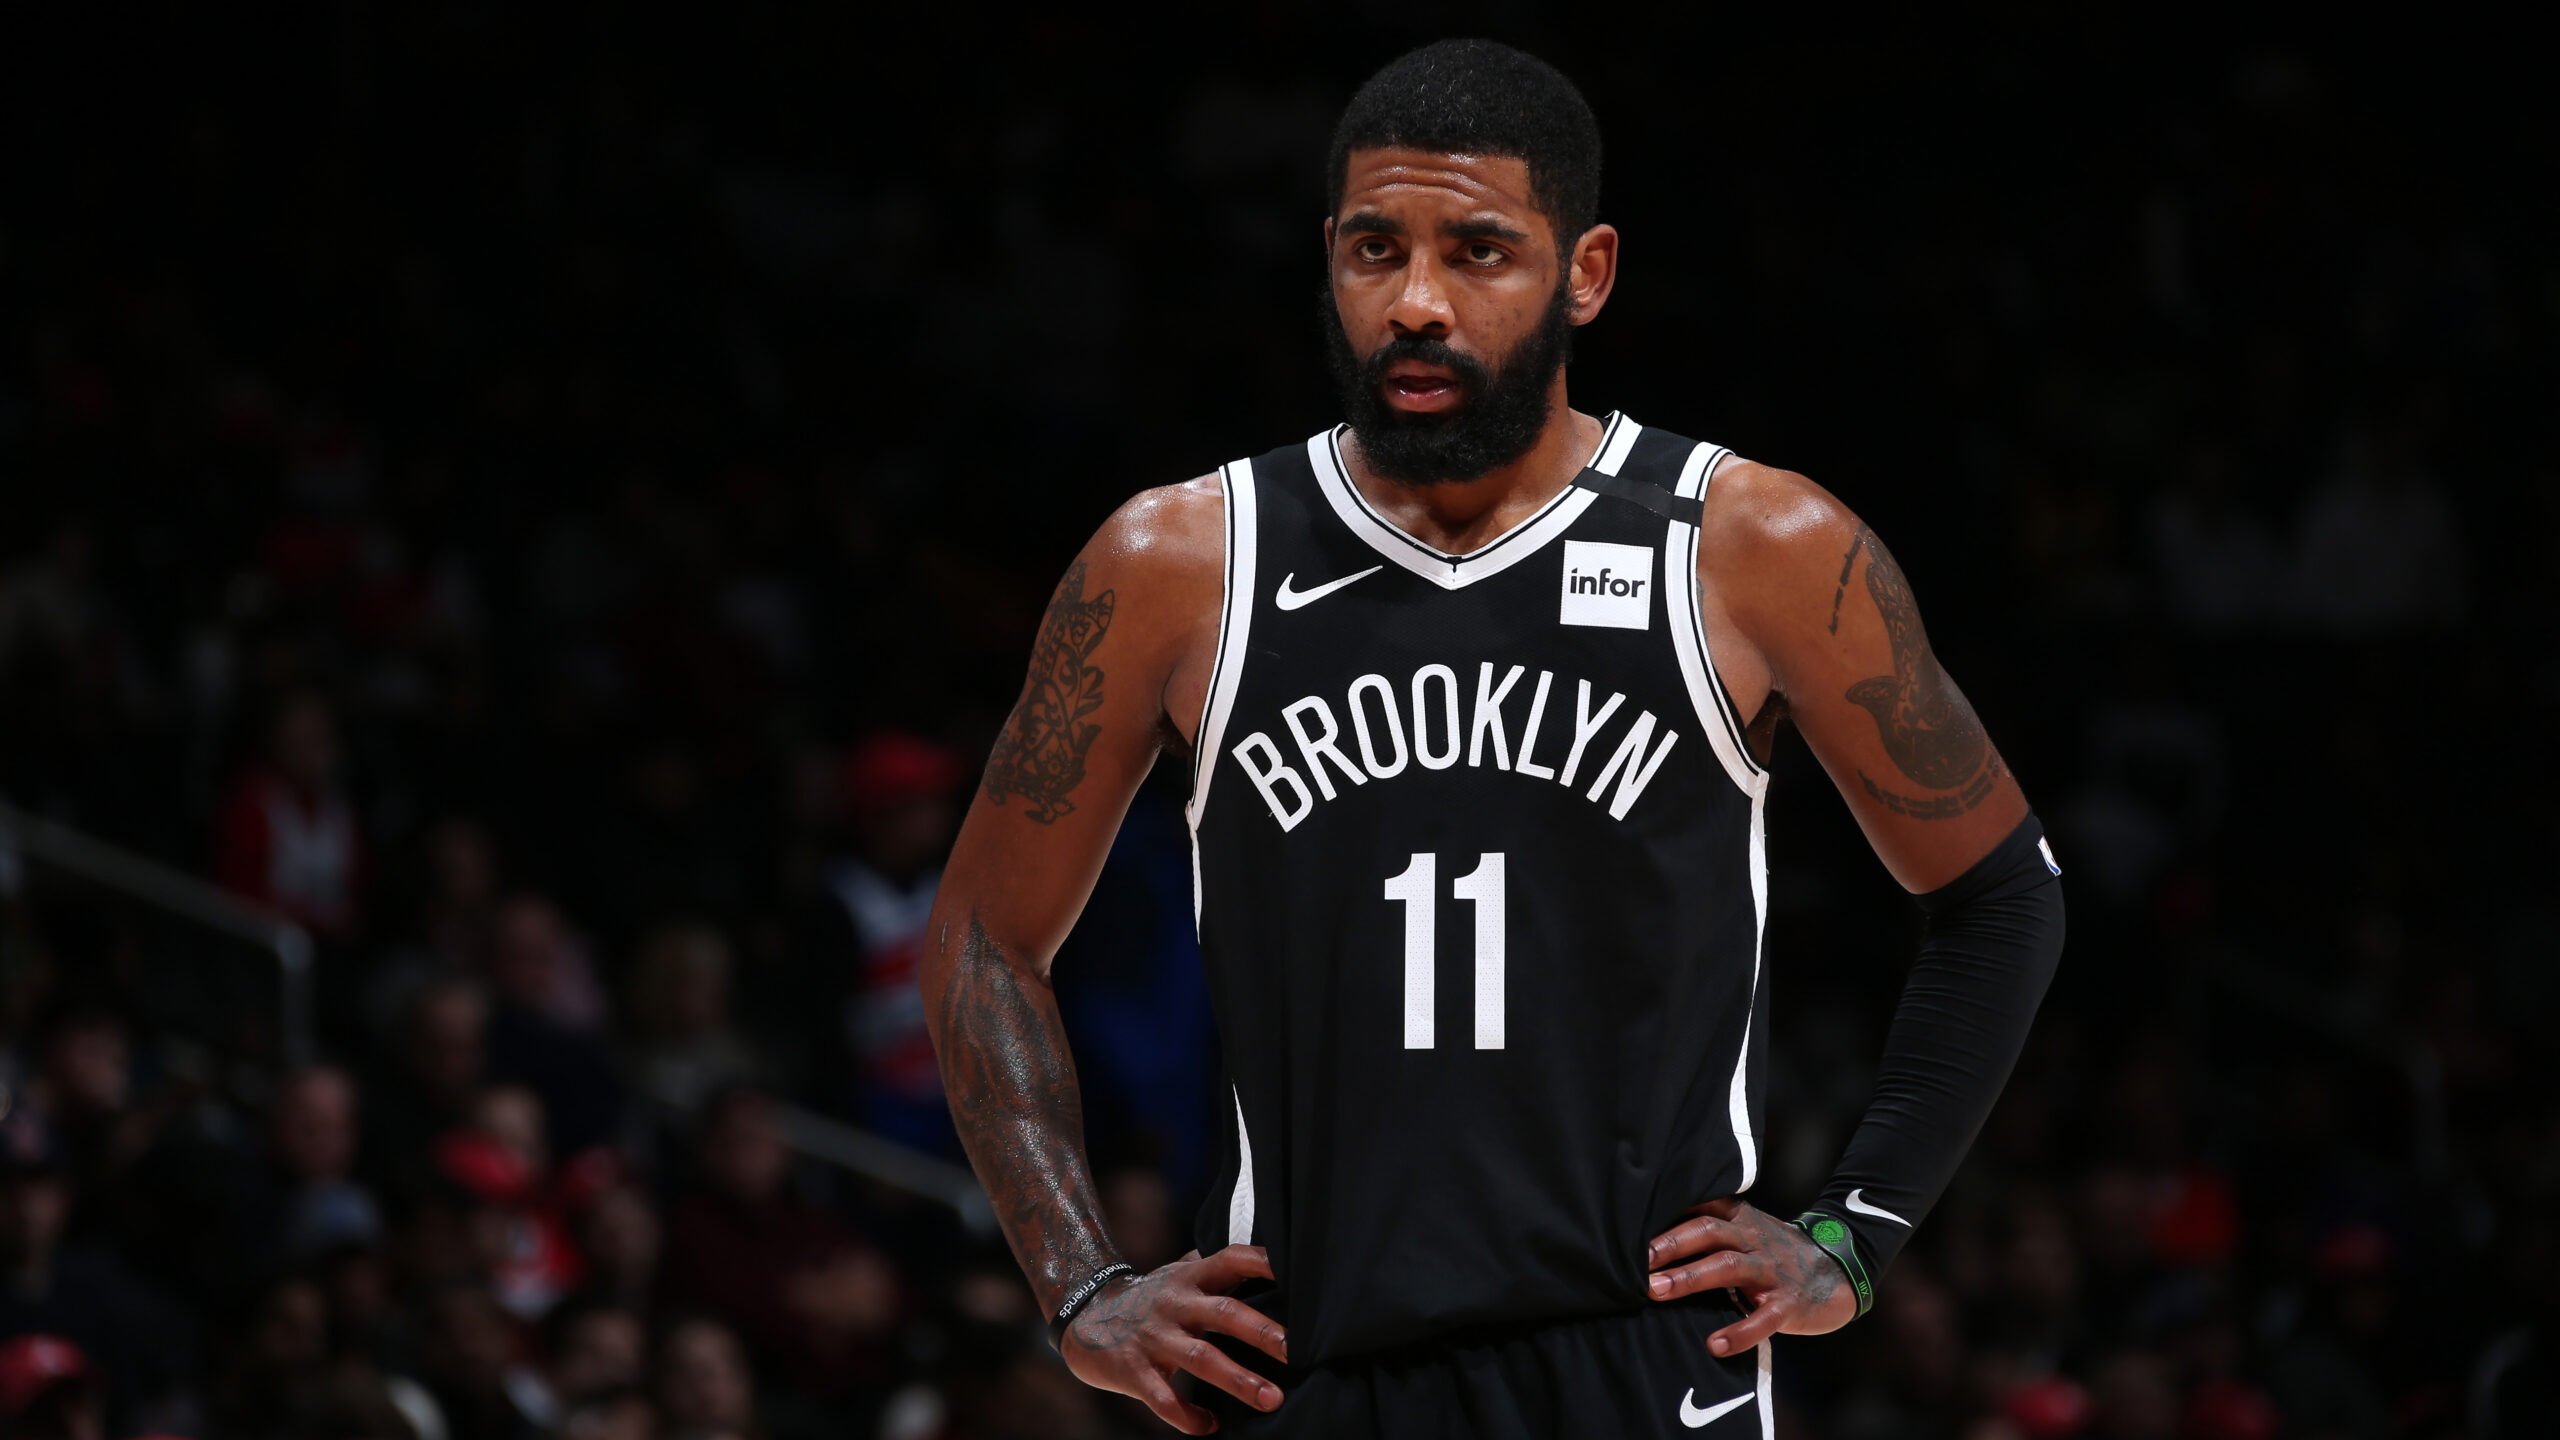 Nets guard Kyrie Irving undergoes successful shoulder surgery